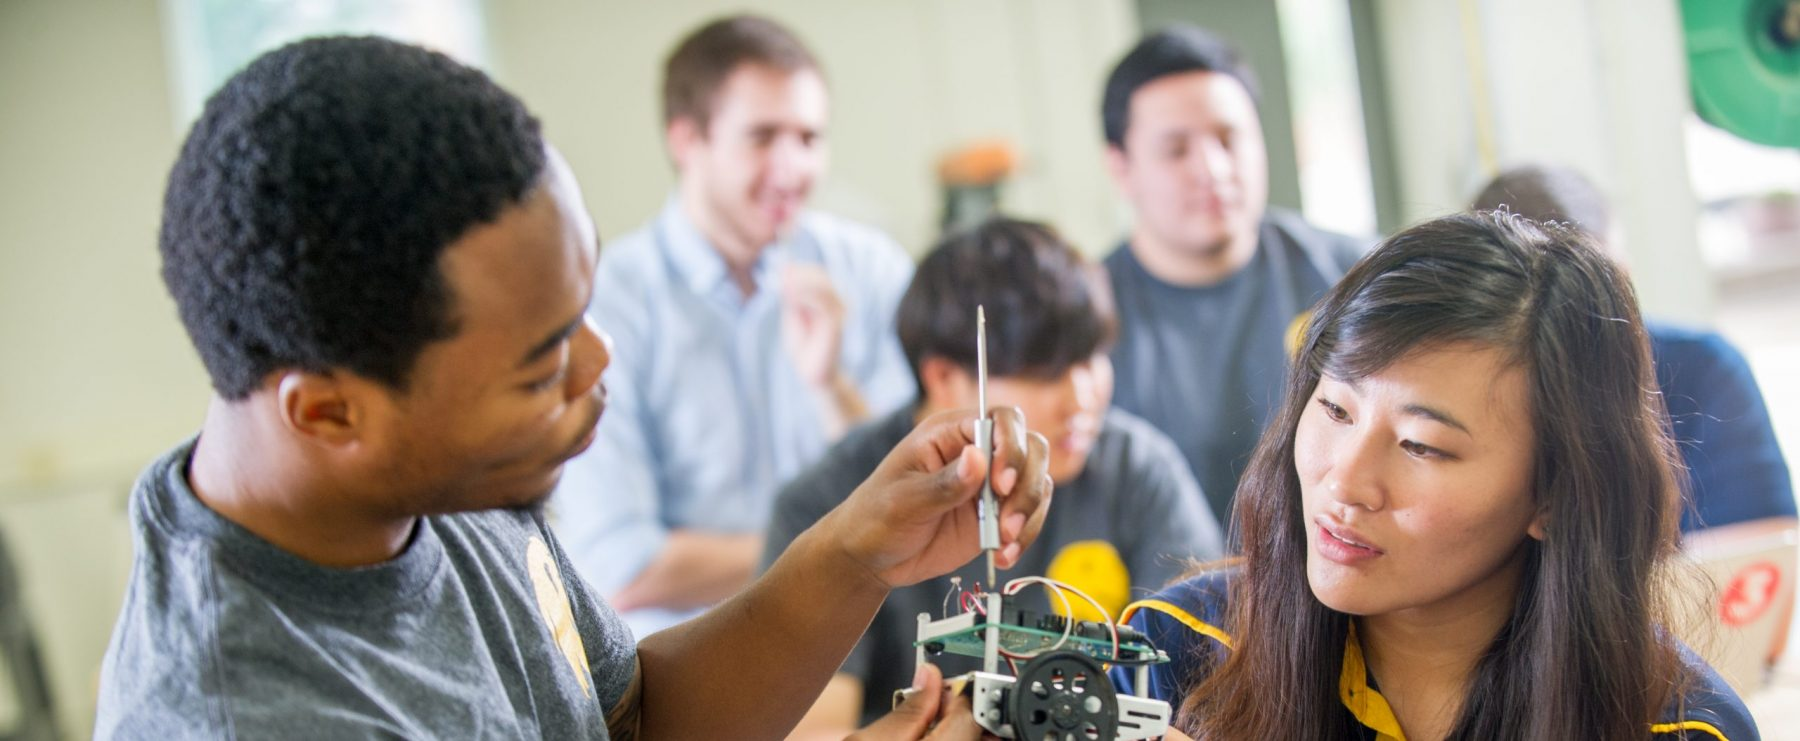 Electrical engineering students